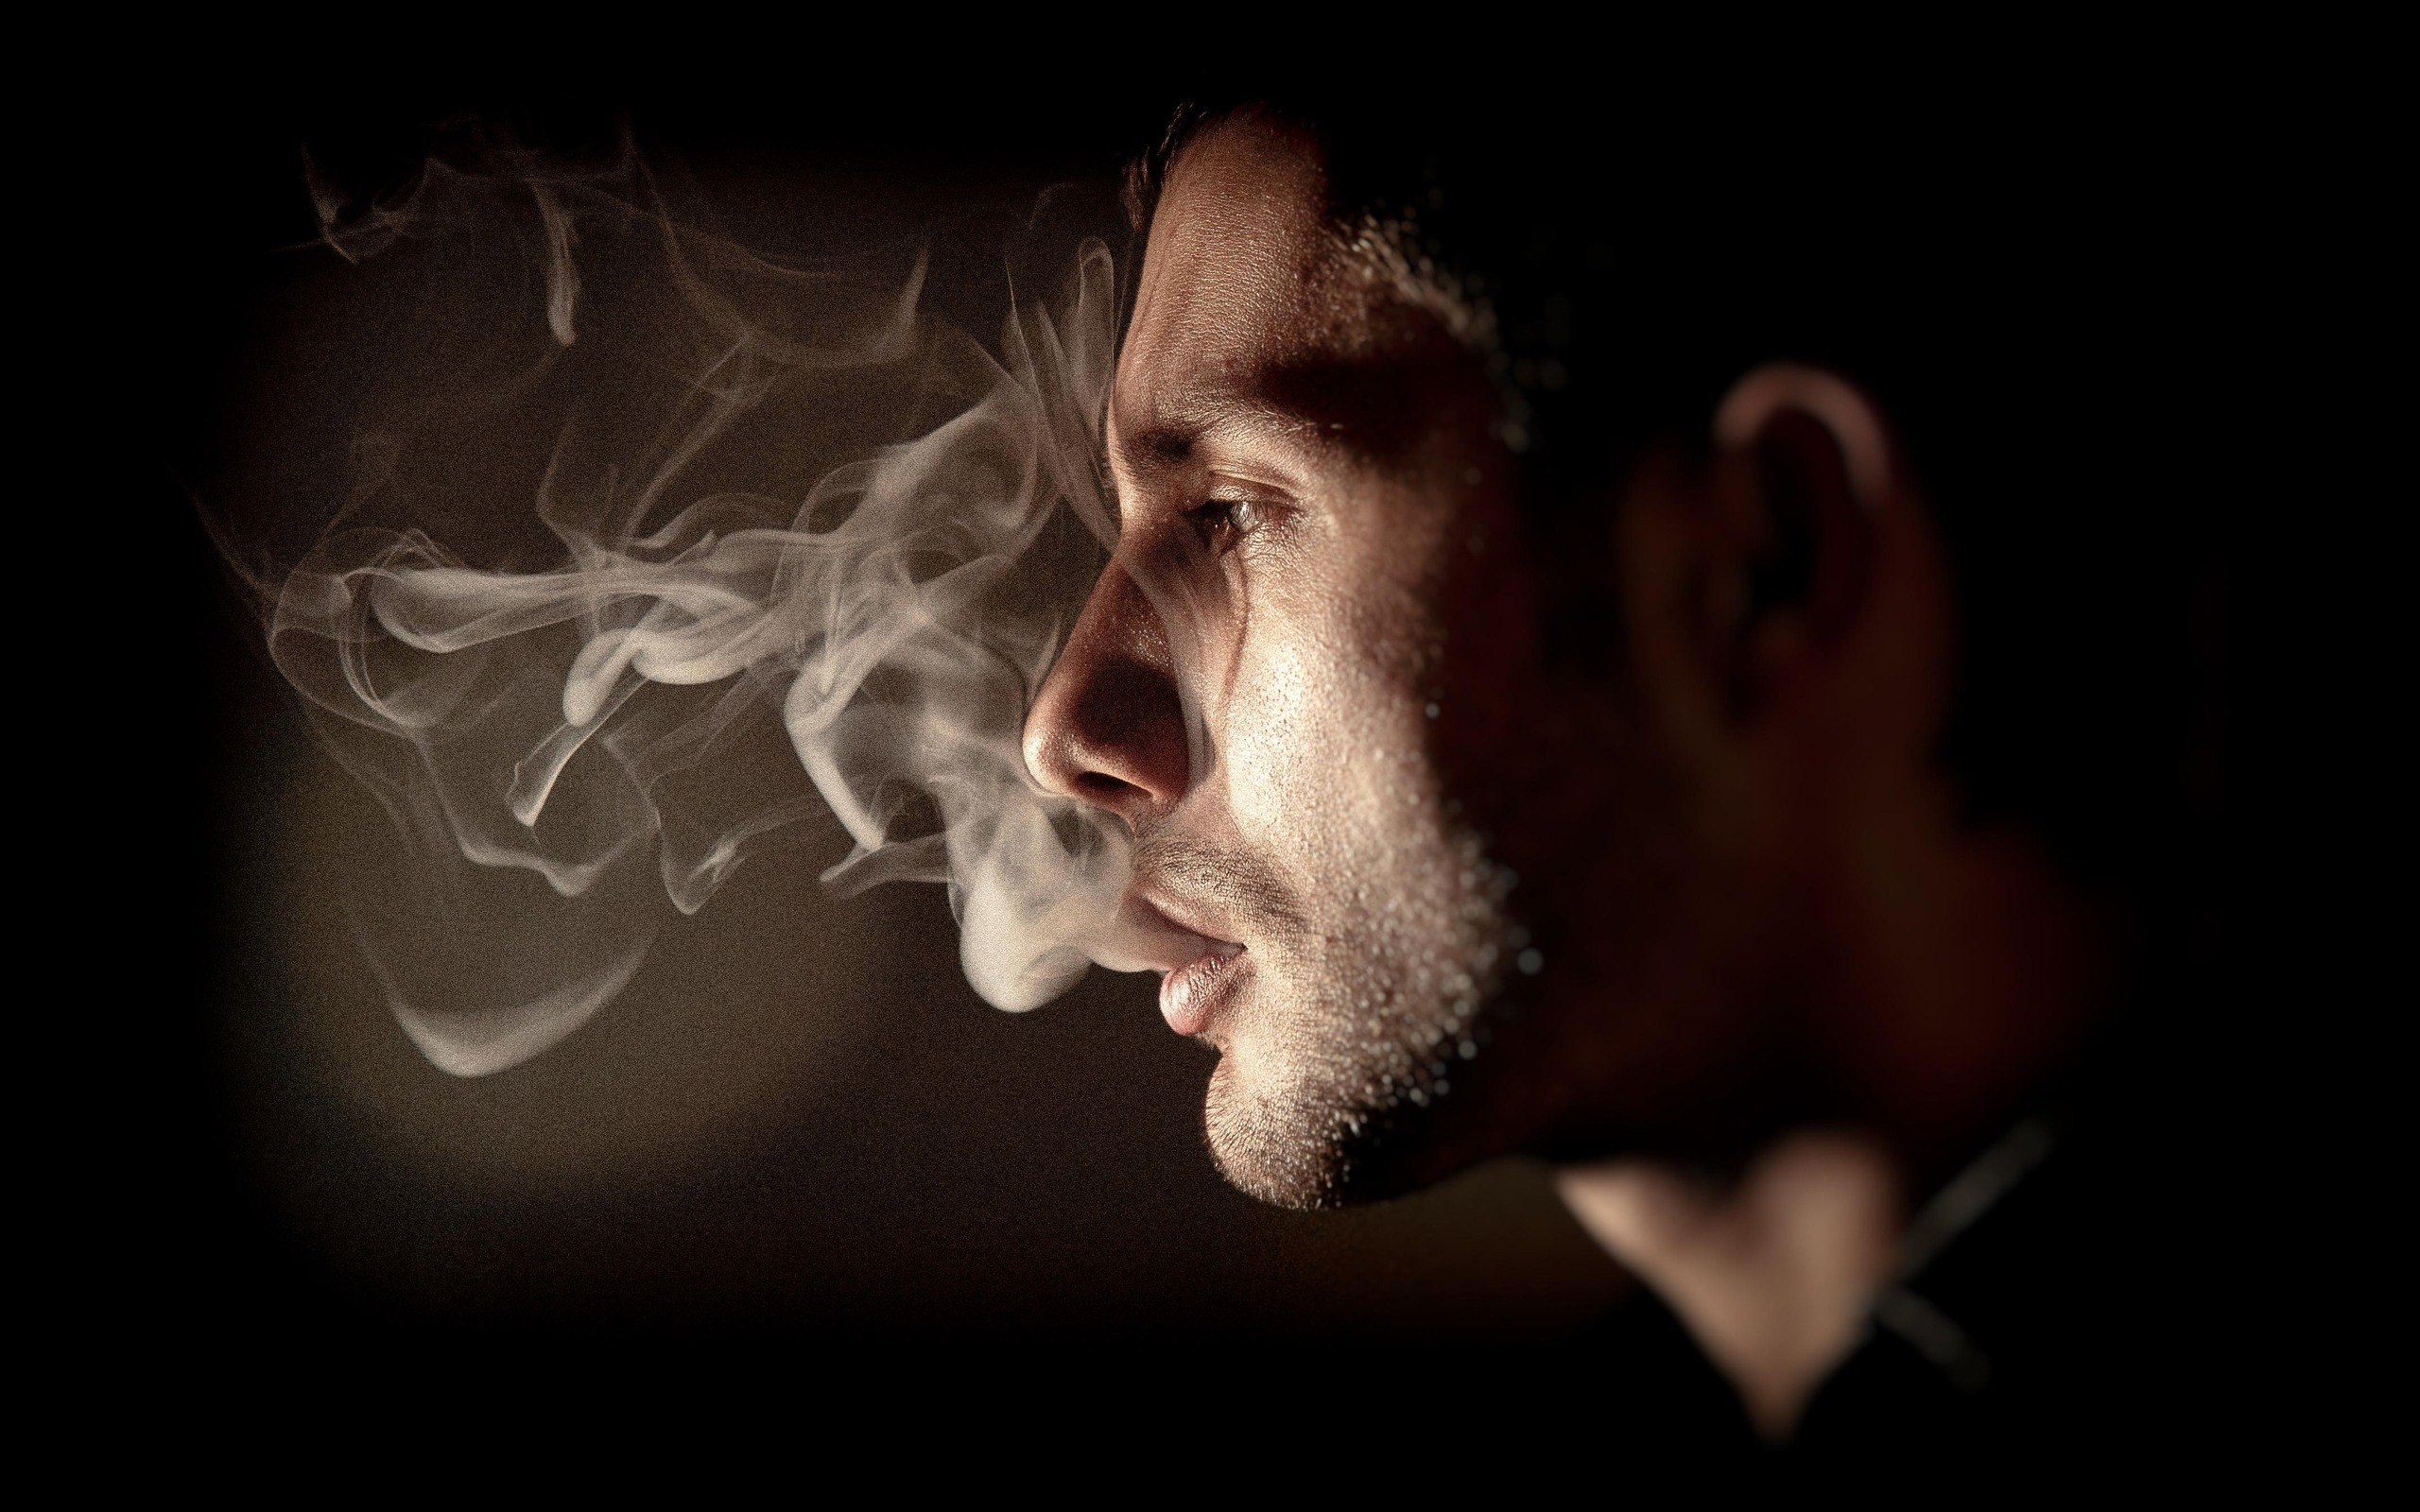 Images Wallpapers of Smoke in HD Quality BsnSCB